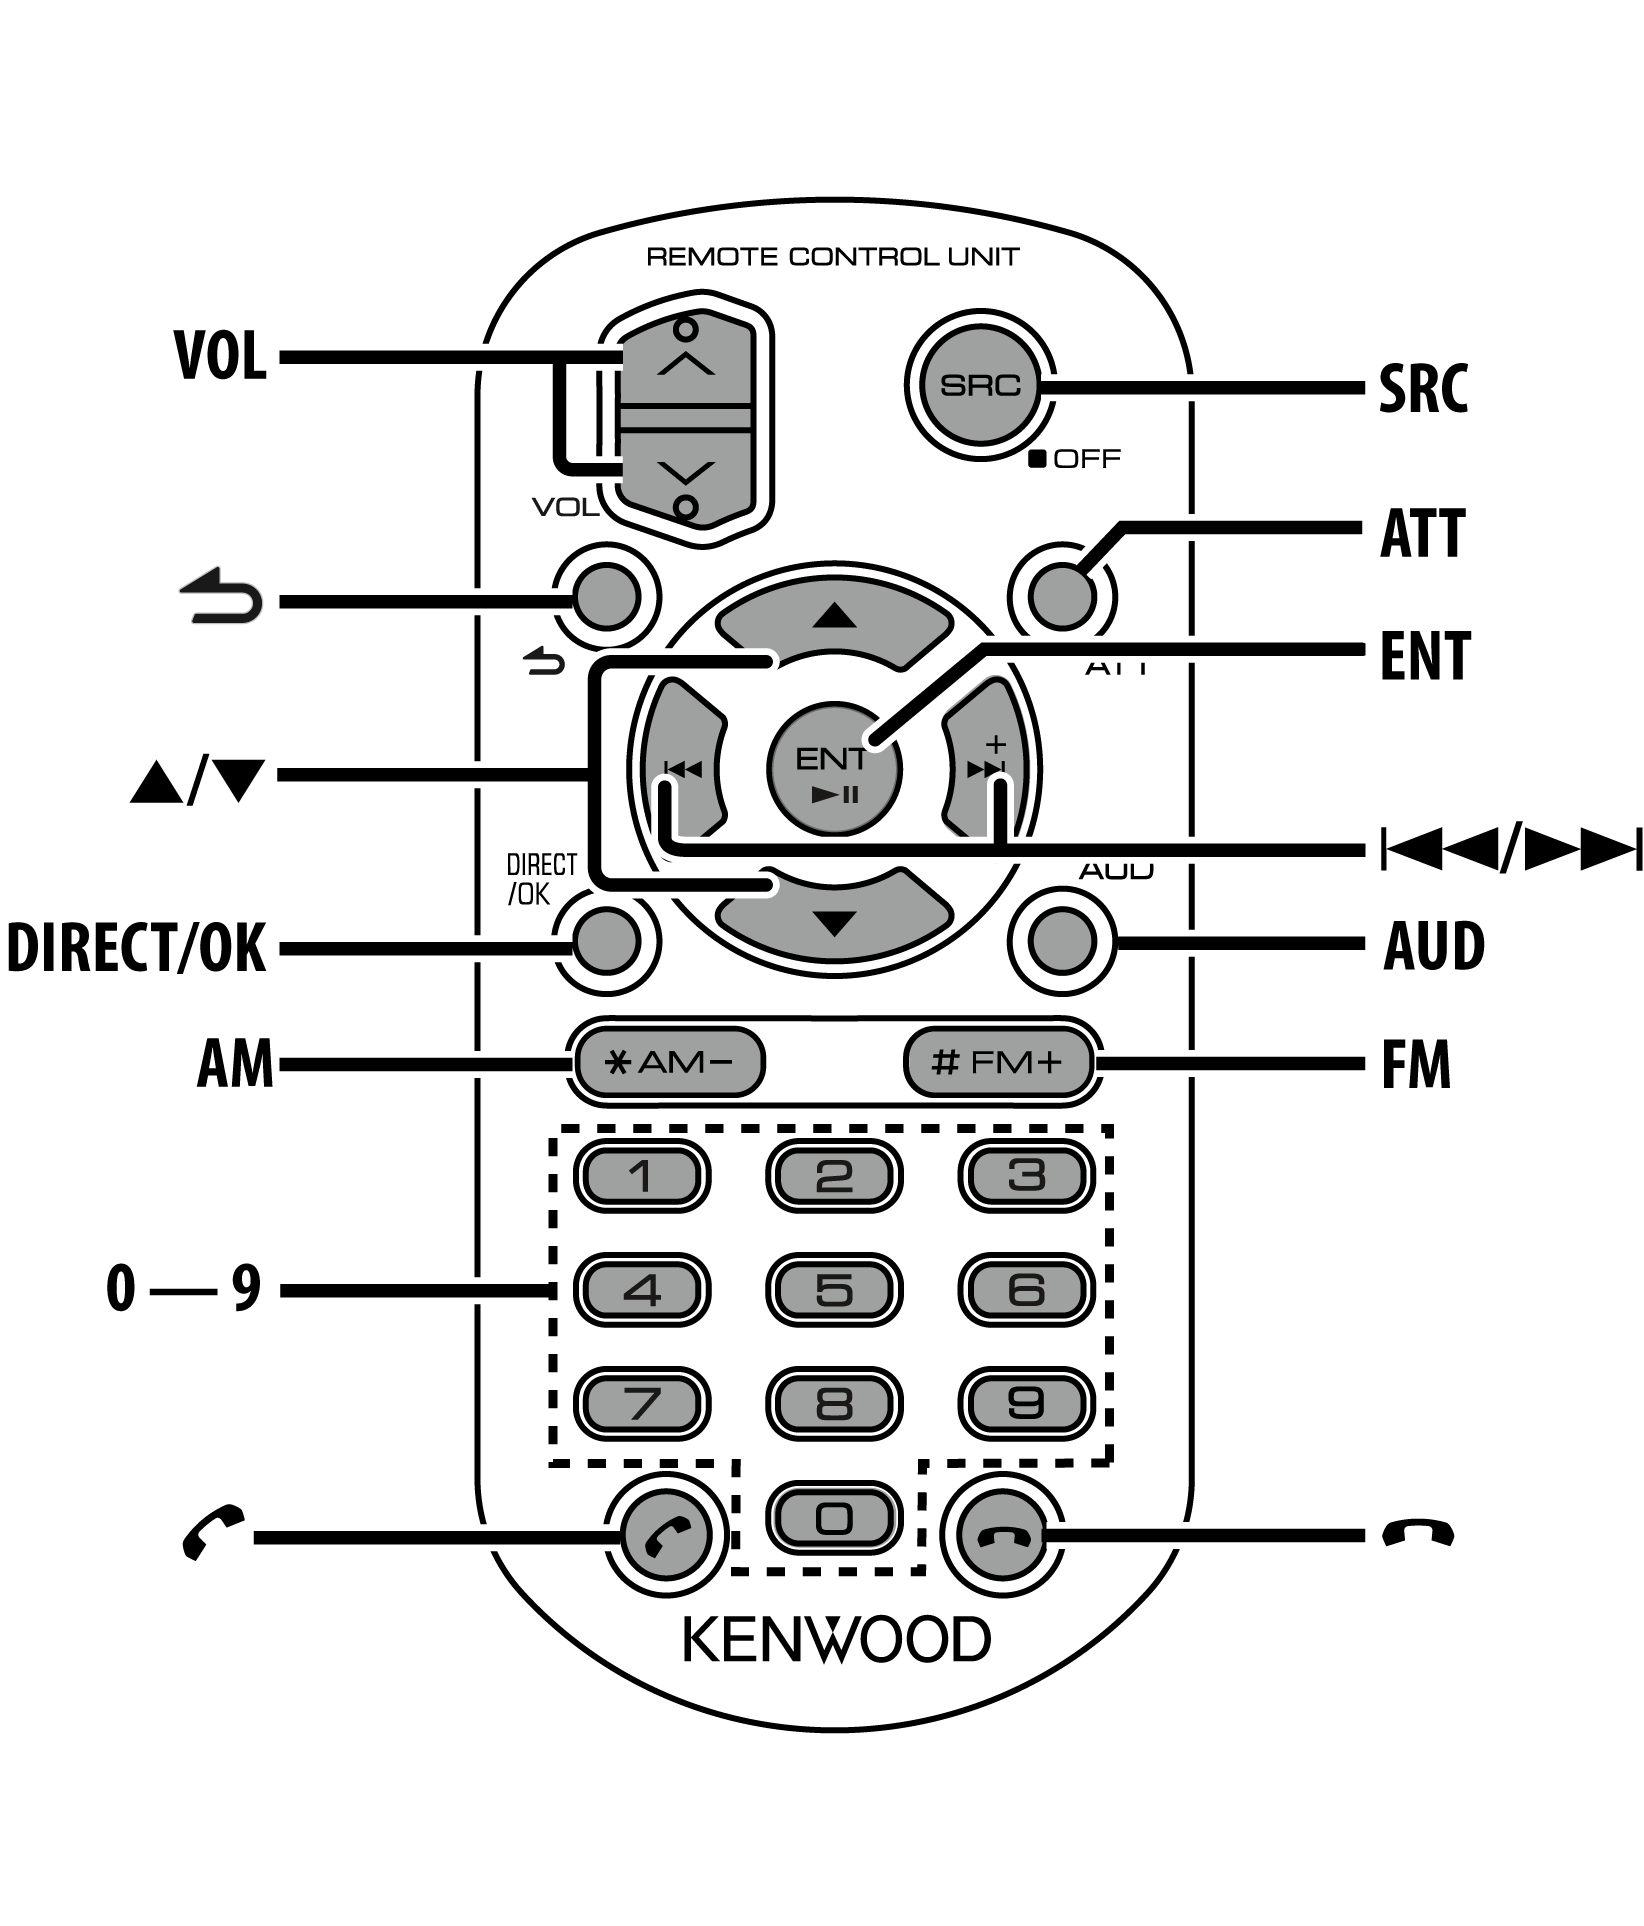 Kenwood Kdc X797 Car Stereo Wiring Harnes Diagram - on